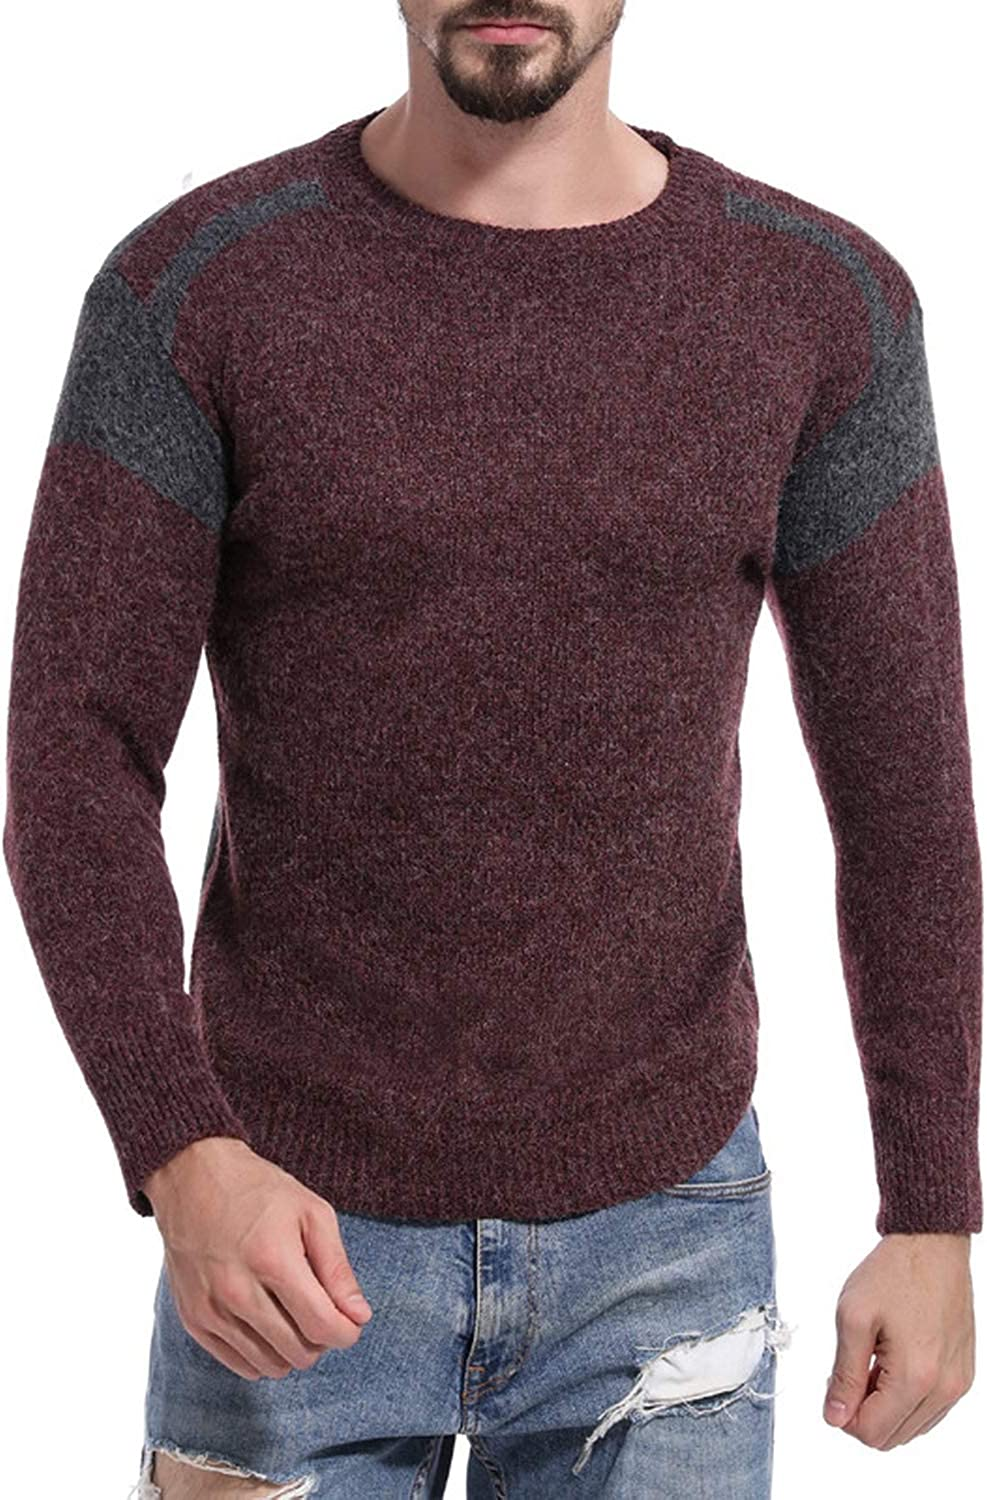 UE-23UJ Winter O-Neck Sweater Men Cashmere Pullover Mens Sweater Mens Knitted Sweaters Pull Homme